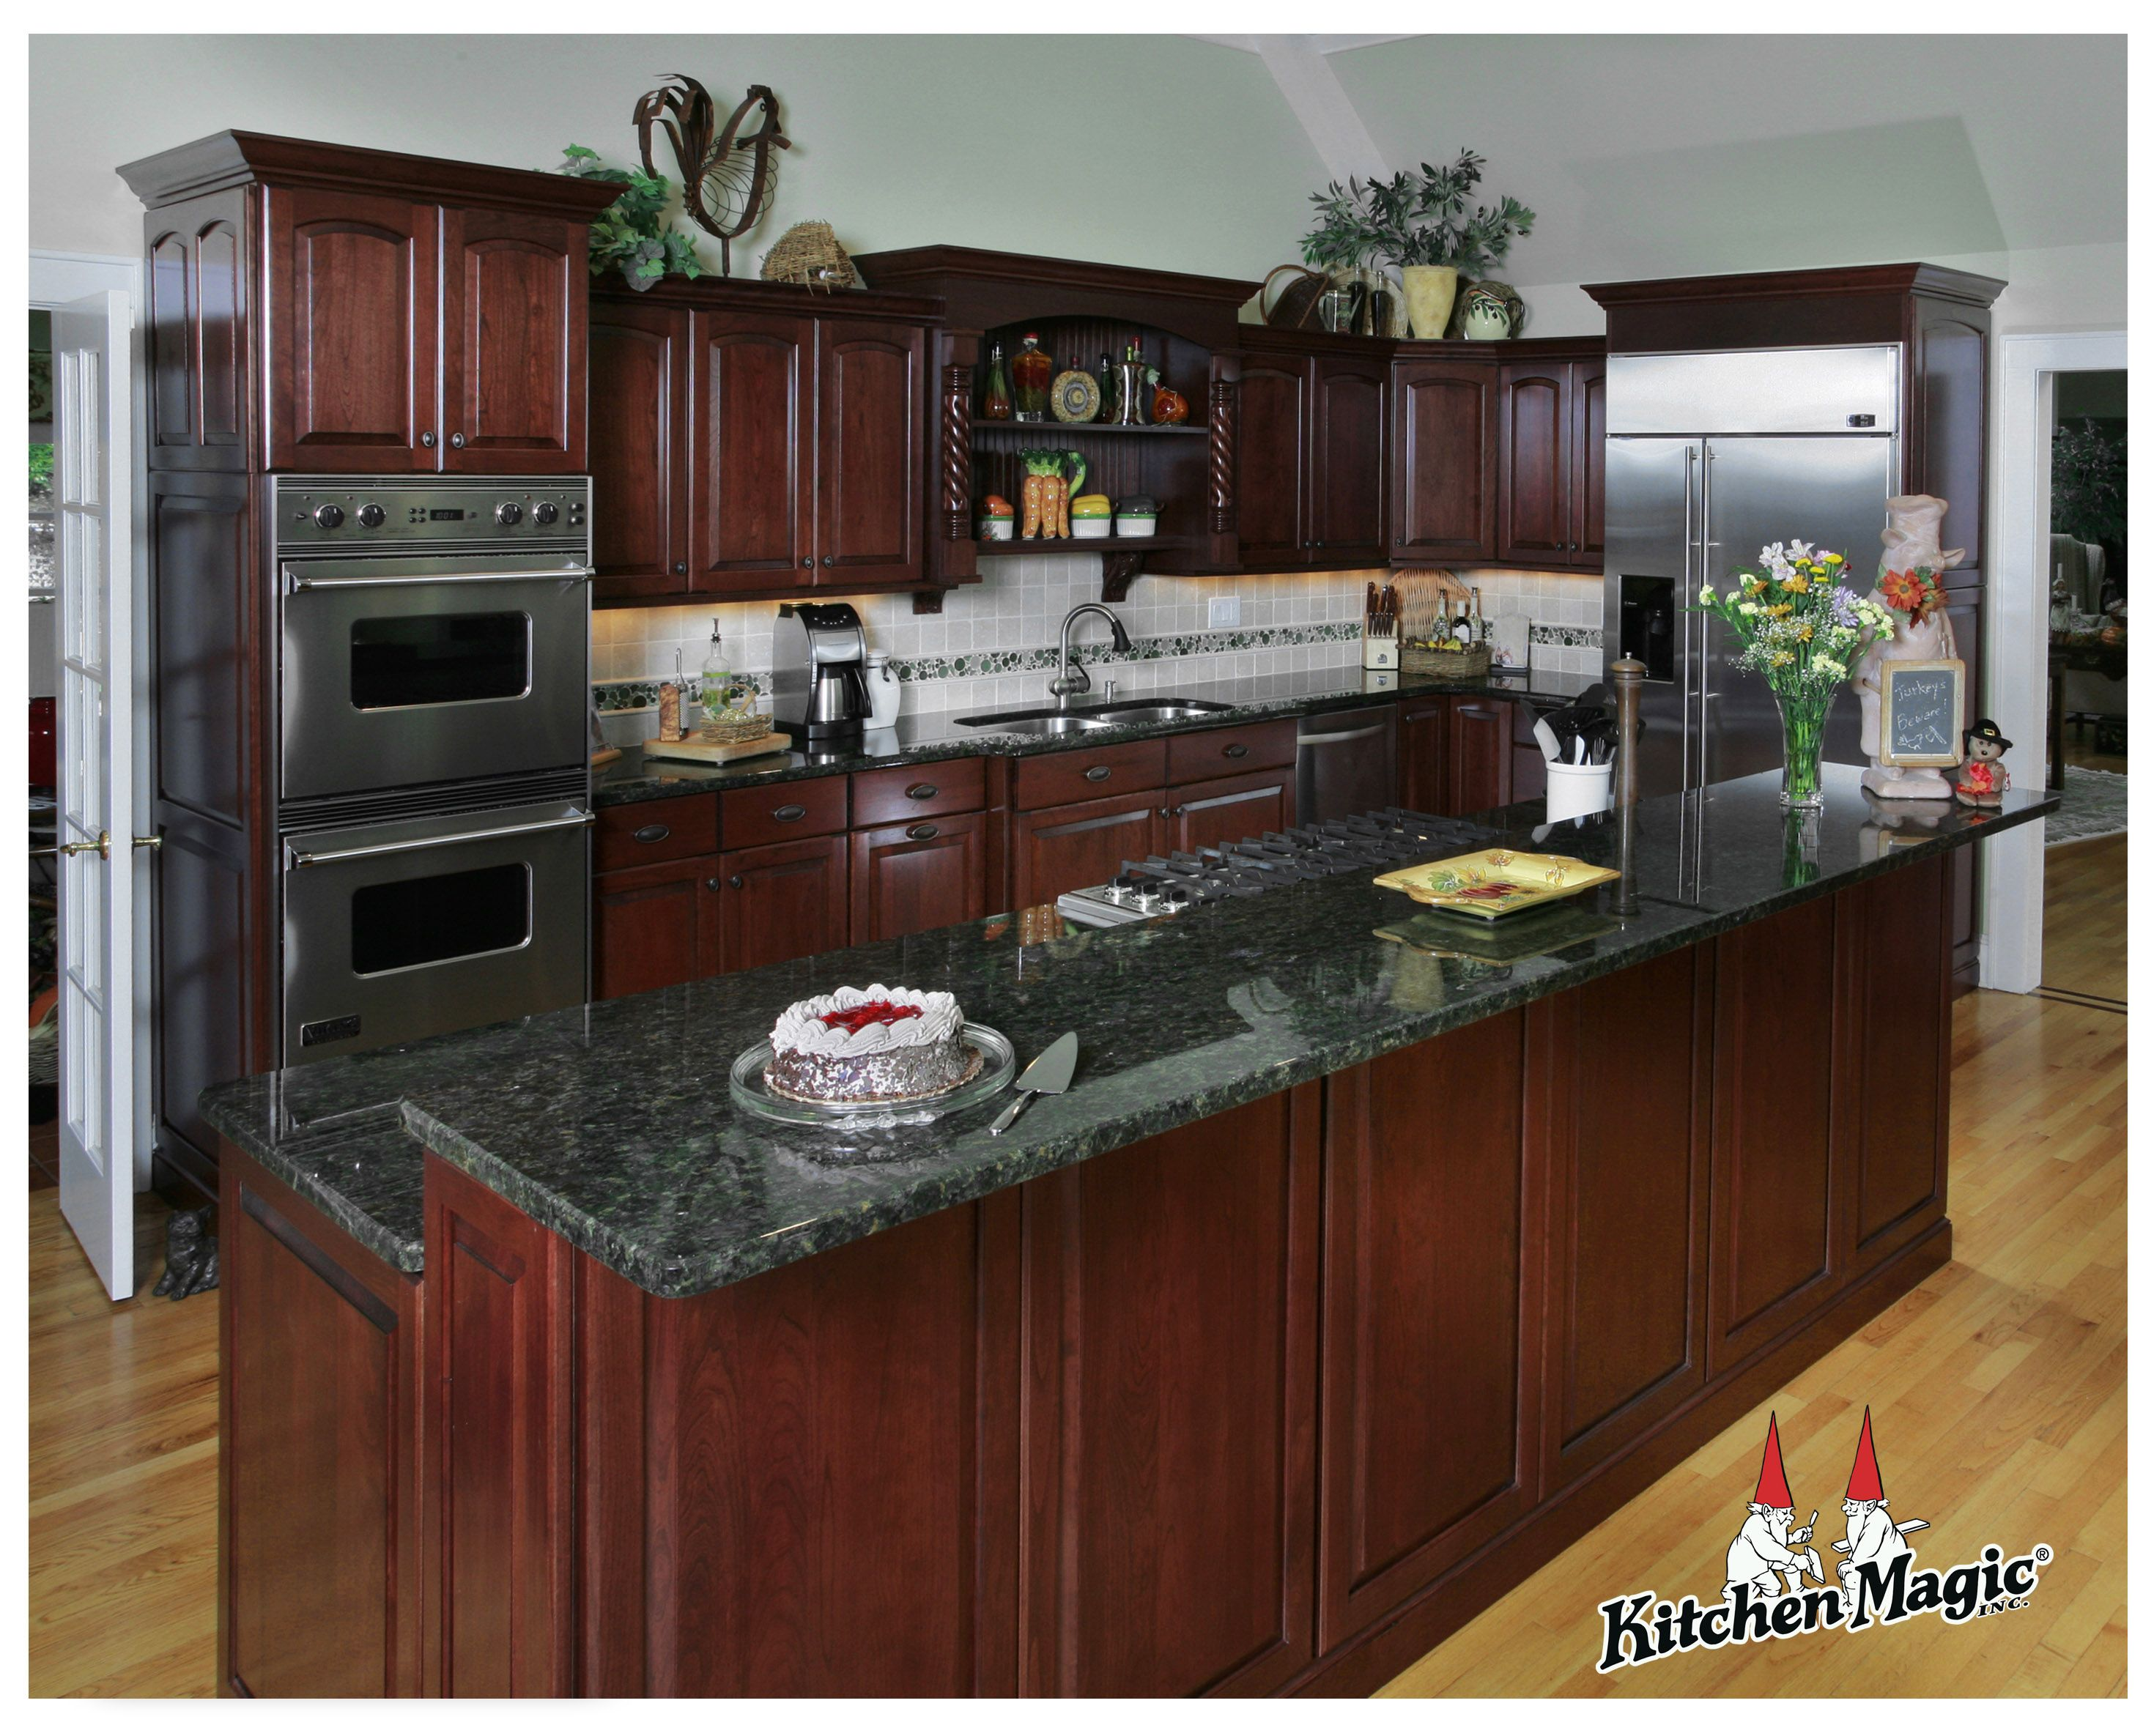 Cherry Wood Kitchen Cabinets Cordovan Cherry Wood Cabinets Kitchen Magic Inc This Is The